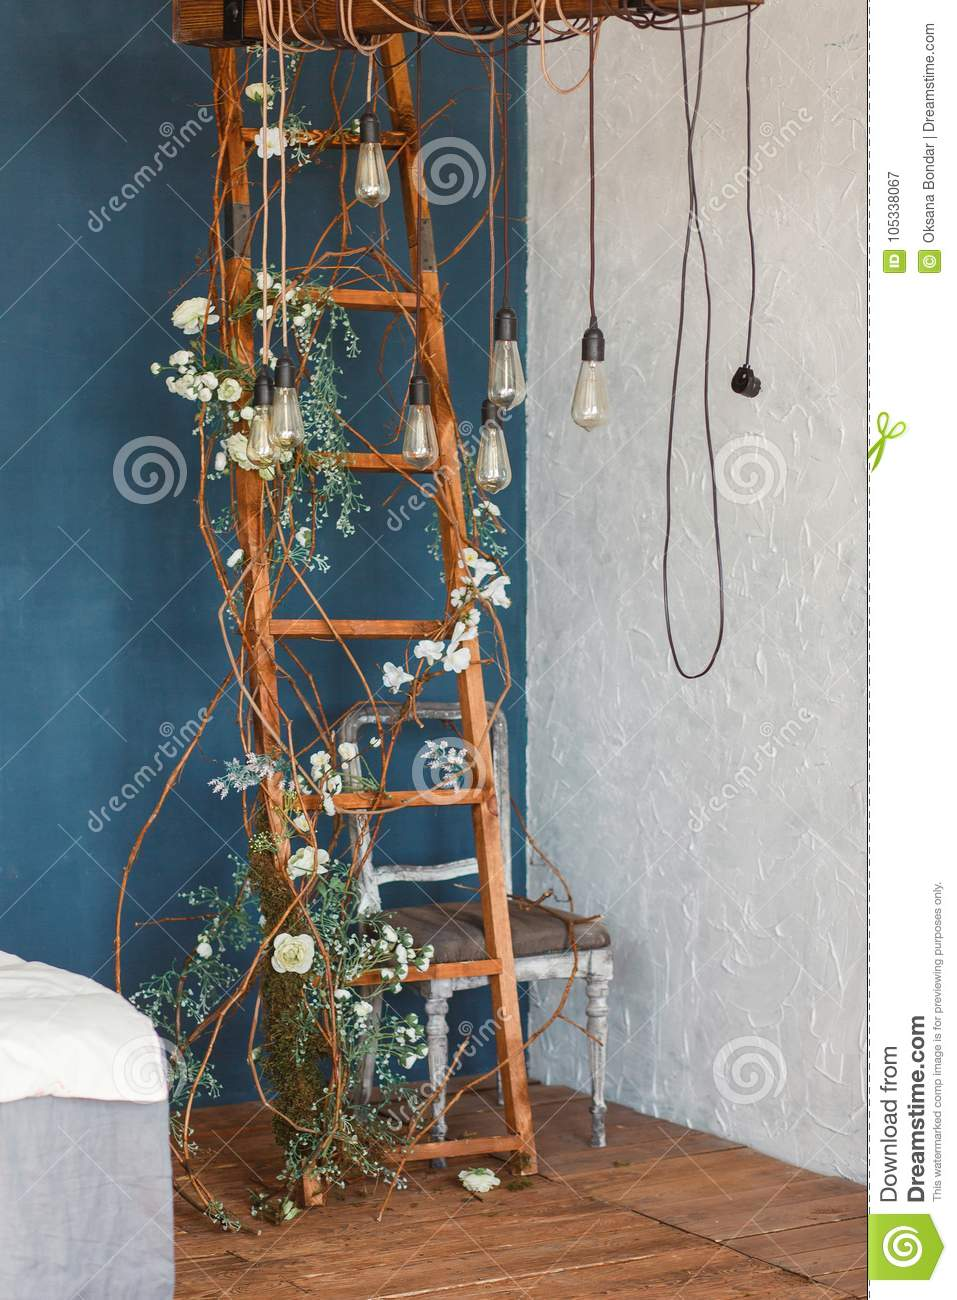 Decorative Antique Edison Style Light Bulbs Against Wooden Ladder Background Lights On The Background Of Blue Wall Stock Image Image Of Backdrop Antique 105338067